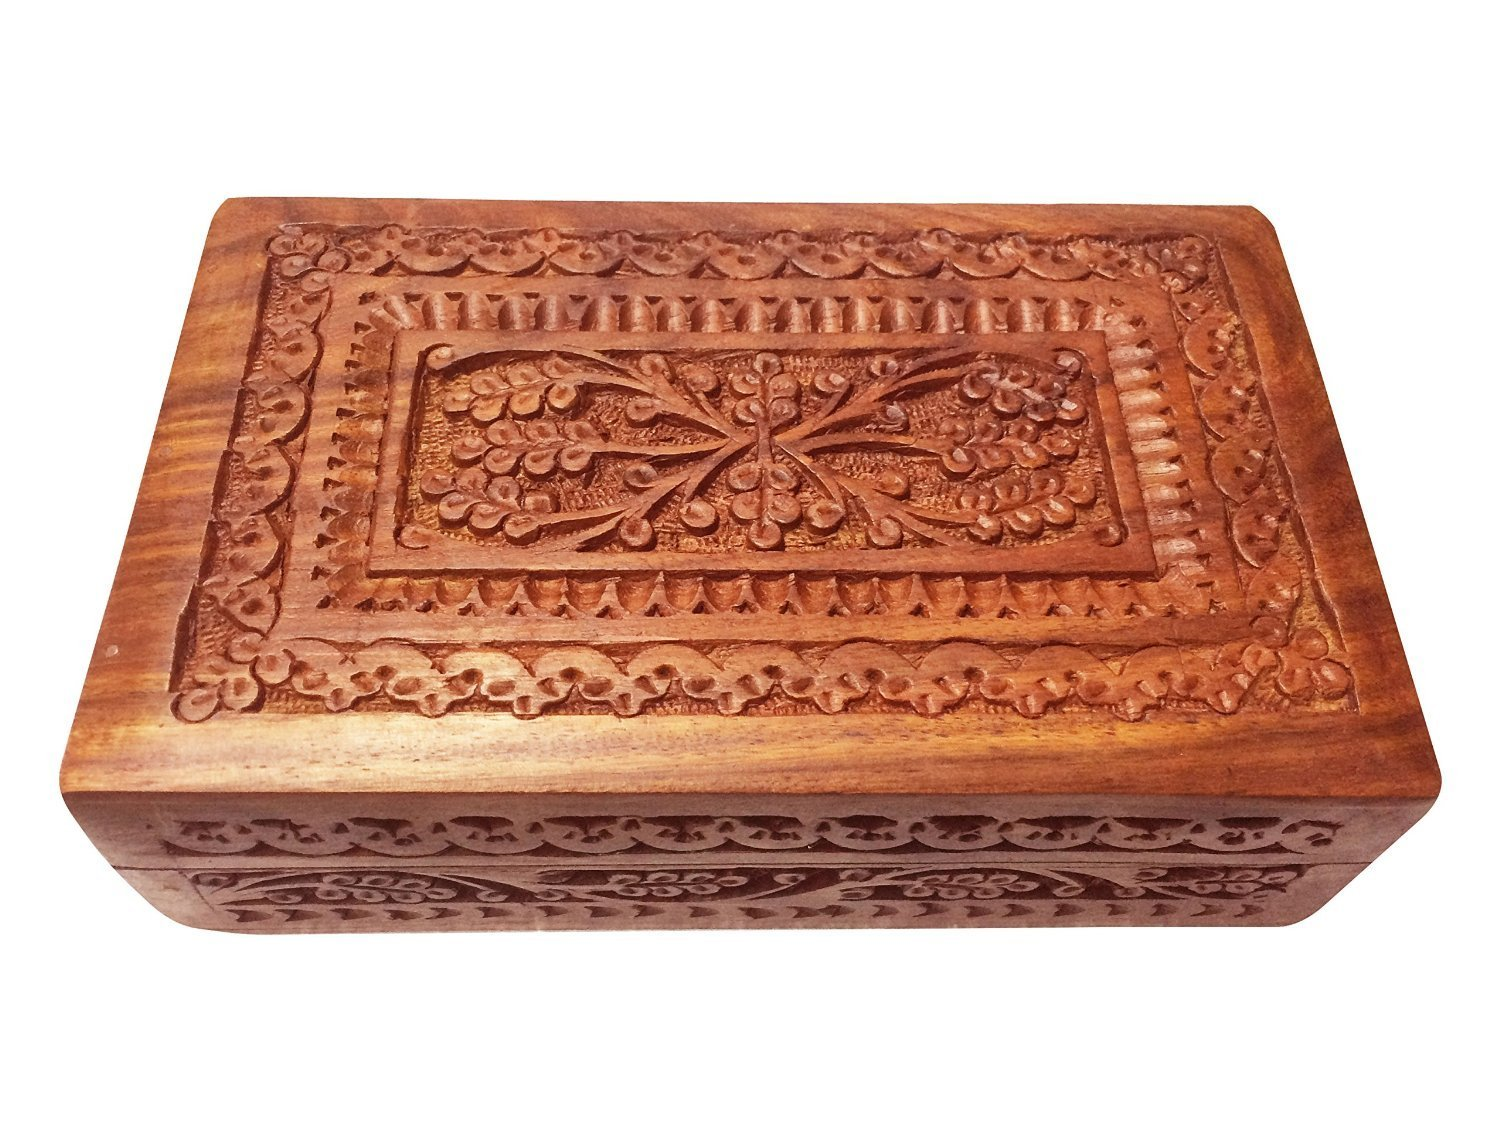 Valentine Day Special Present, Wooden Carving Box, Storage box, Vintage Box, Wooden Keepsake Jewelry Box, Jewelry Trinket Box, Brown Color Size 7 X 5 Inch